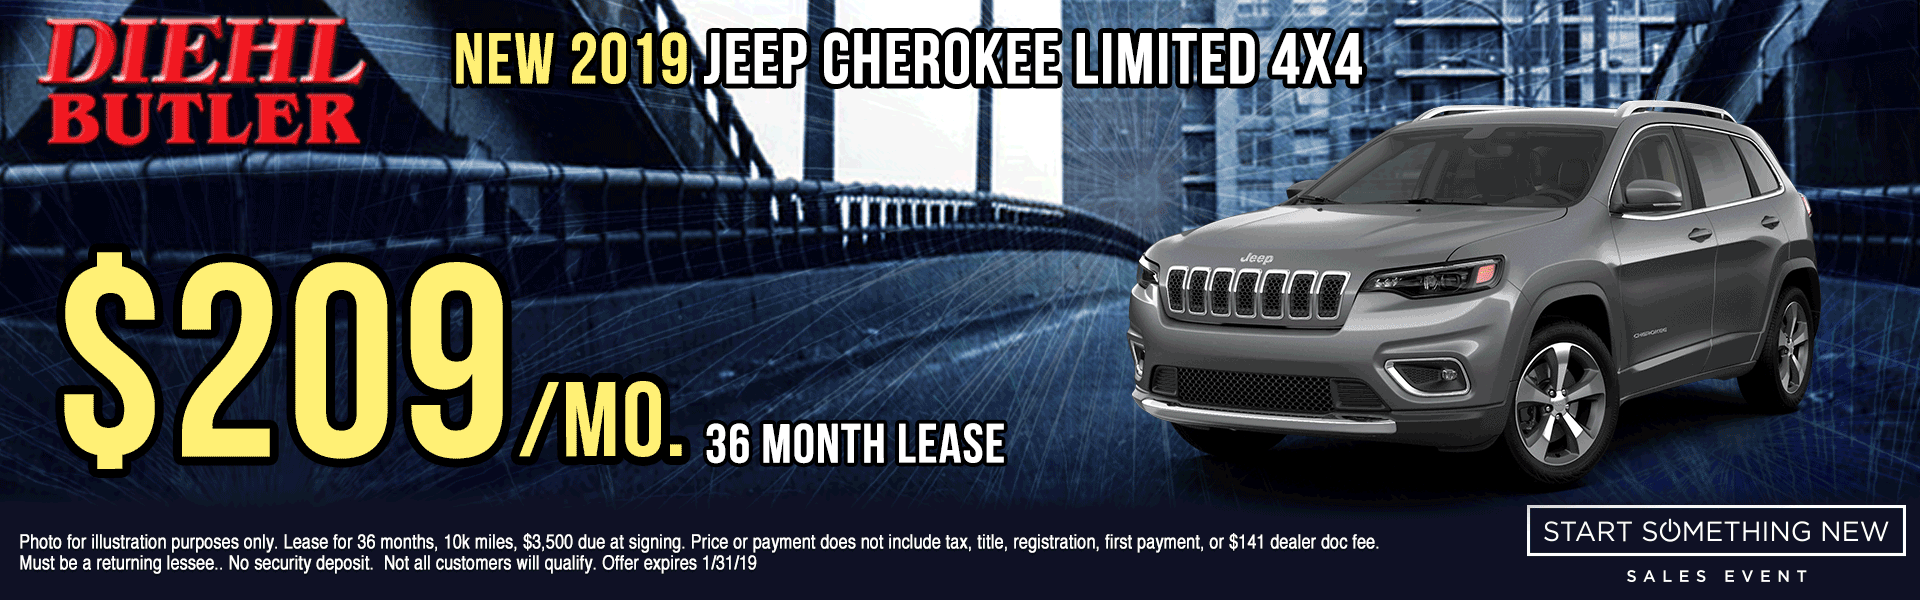 J191015-2019-JEEP-CHEROKEE-LMITED-4X4 Diehl Automotive butler new vehicle specials lease specials Chrysler specials dodge specials jeep specials ram specials wrangler compass Cherokee big horn truck suv offload start something new sales event butler specials